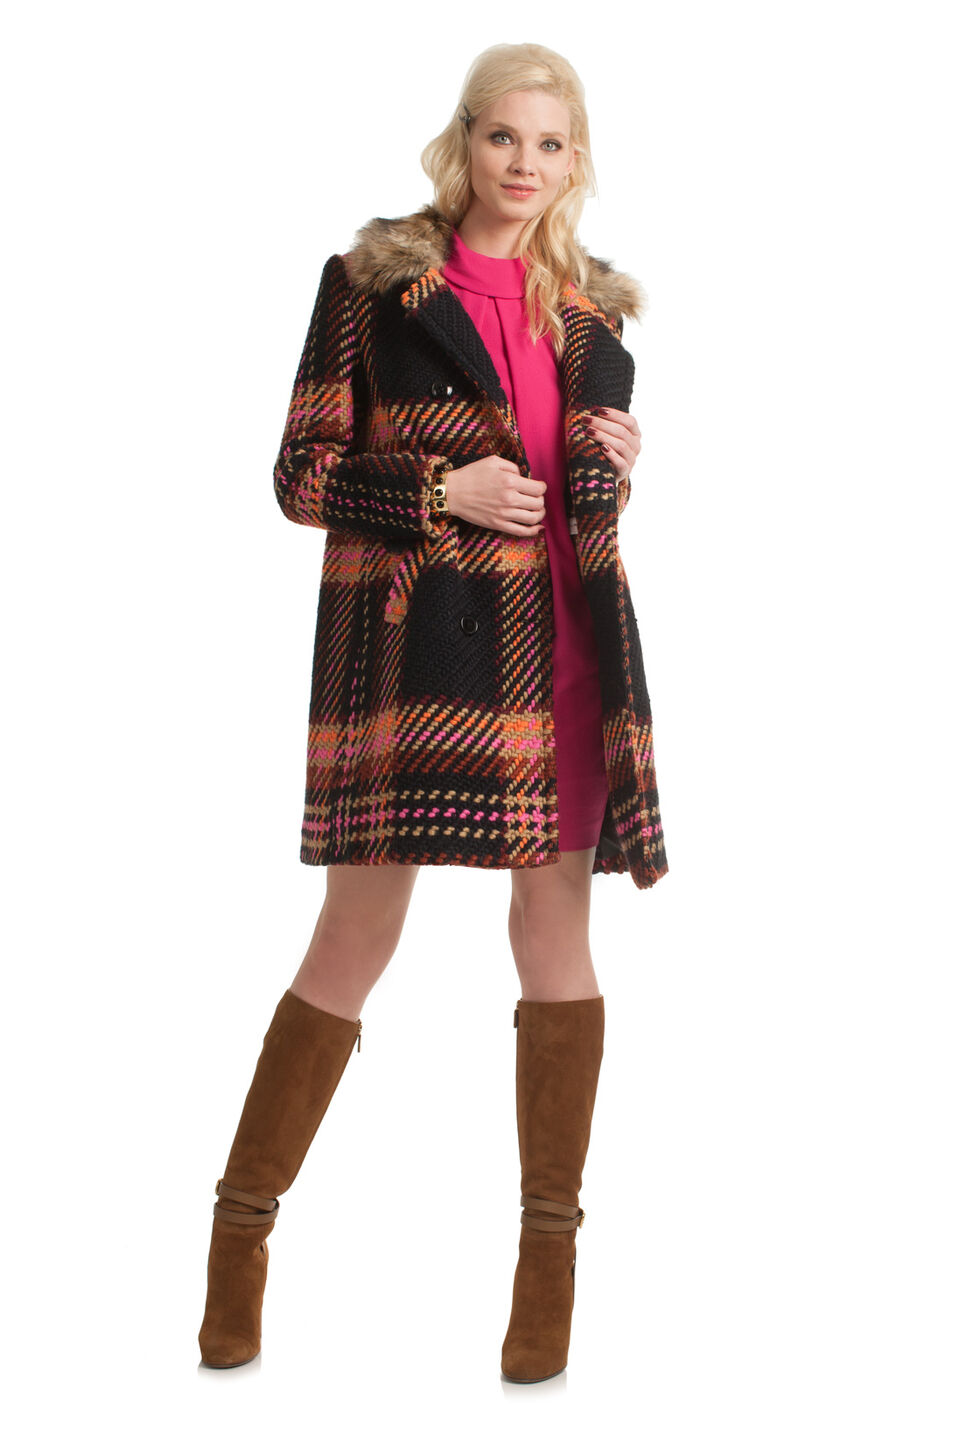 Trina Turk Satisfaction Coat - Multicolor - Size 0